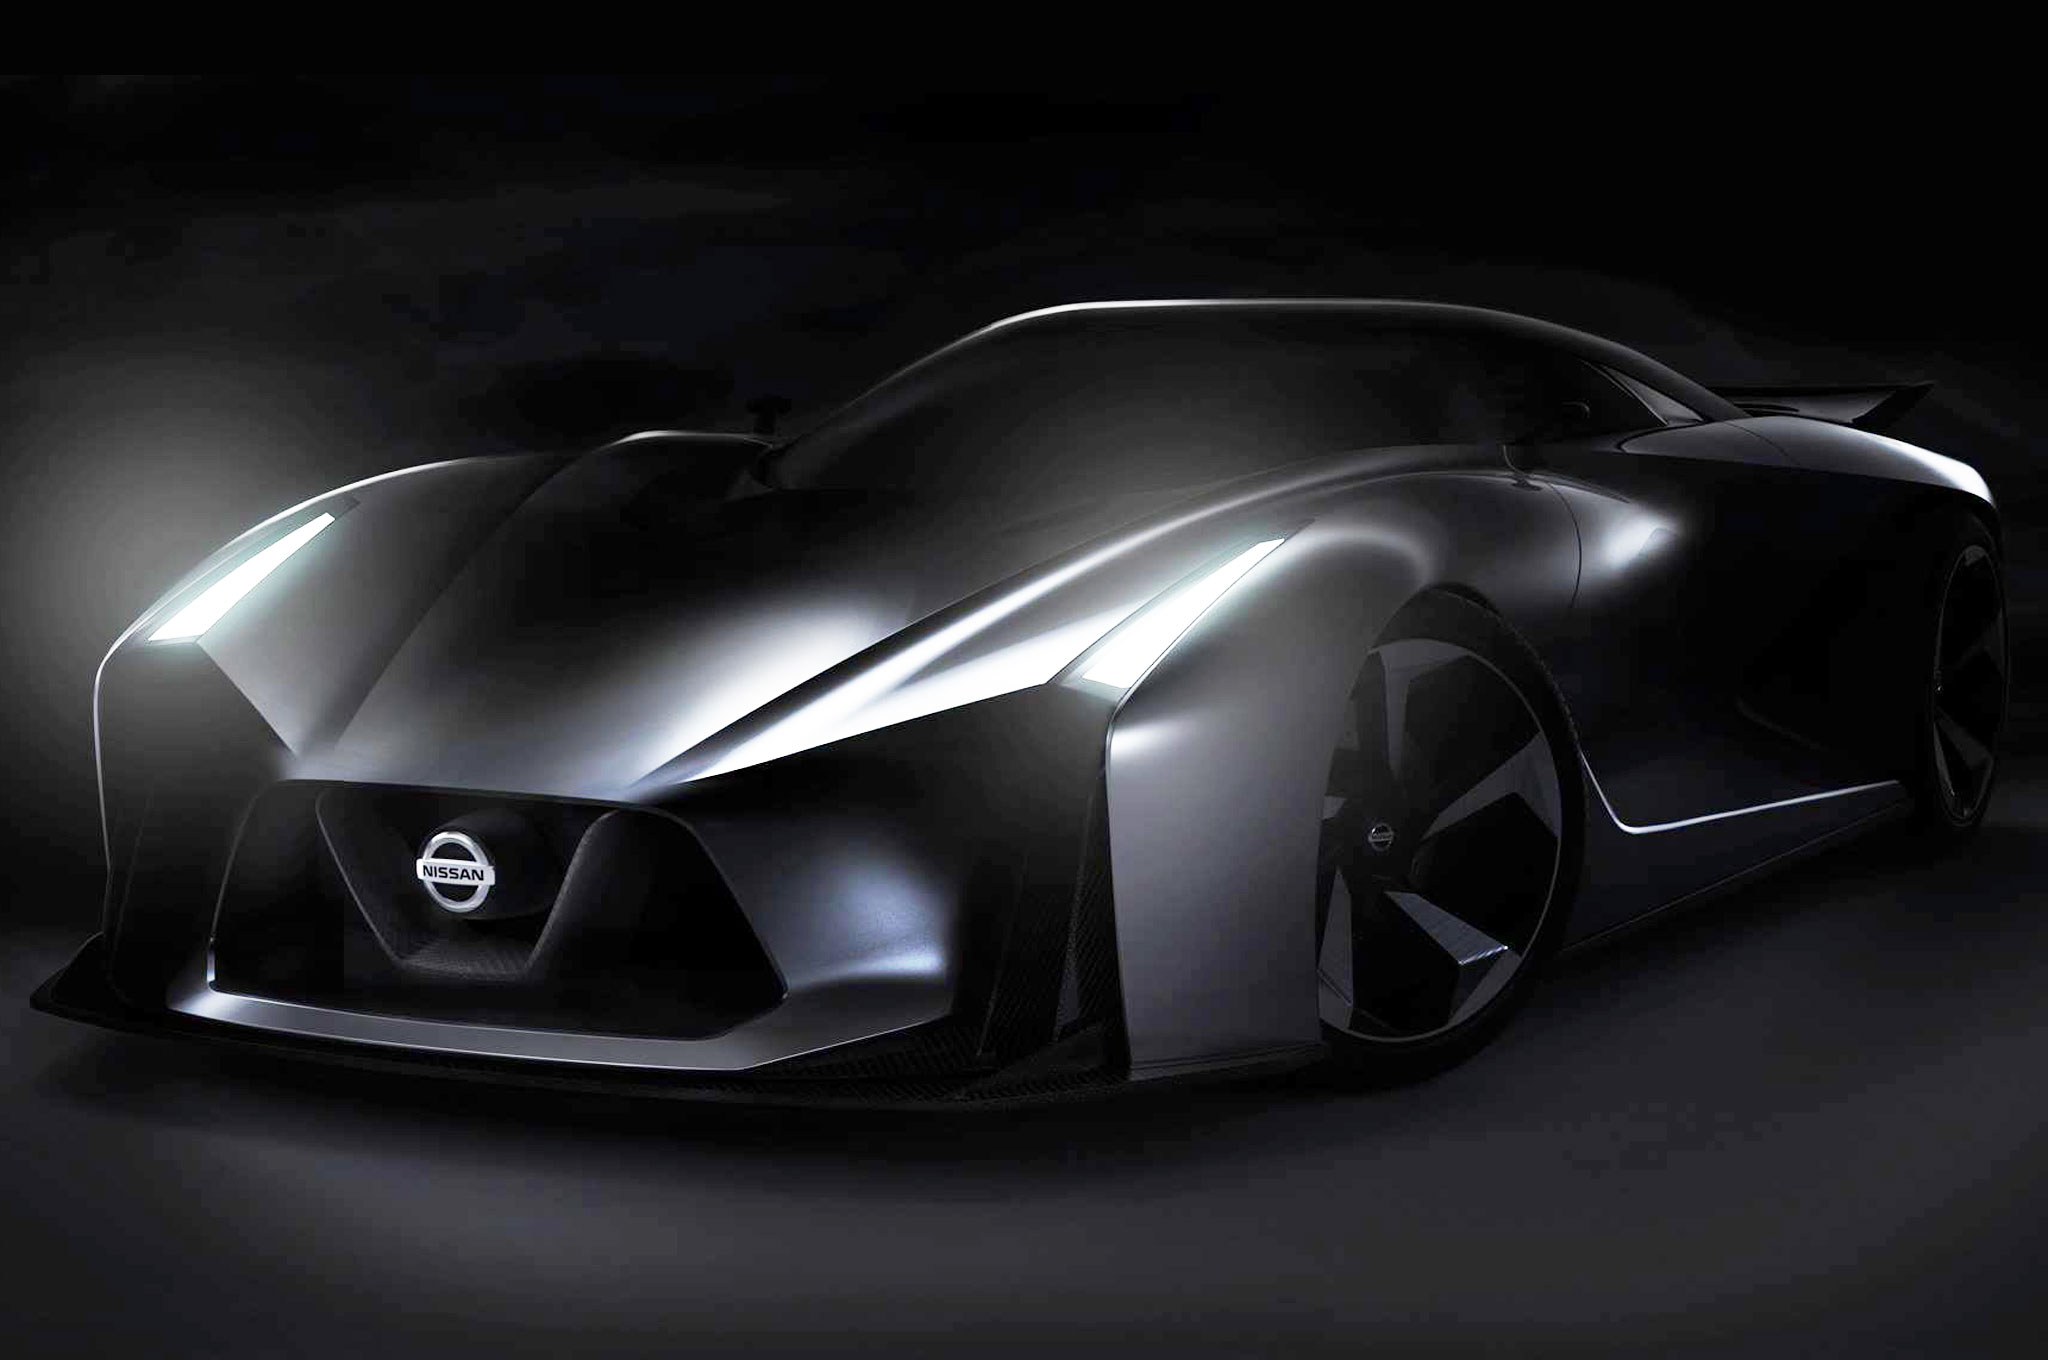 Lovely Nissan Takes Sheet Off New Concept Car, Likely For Gran Turismo